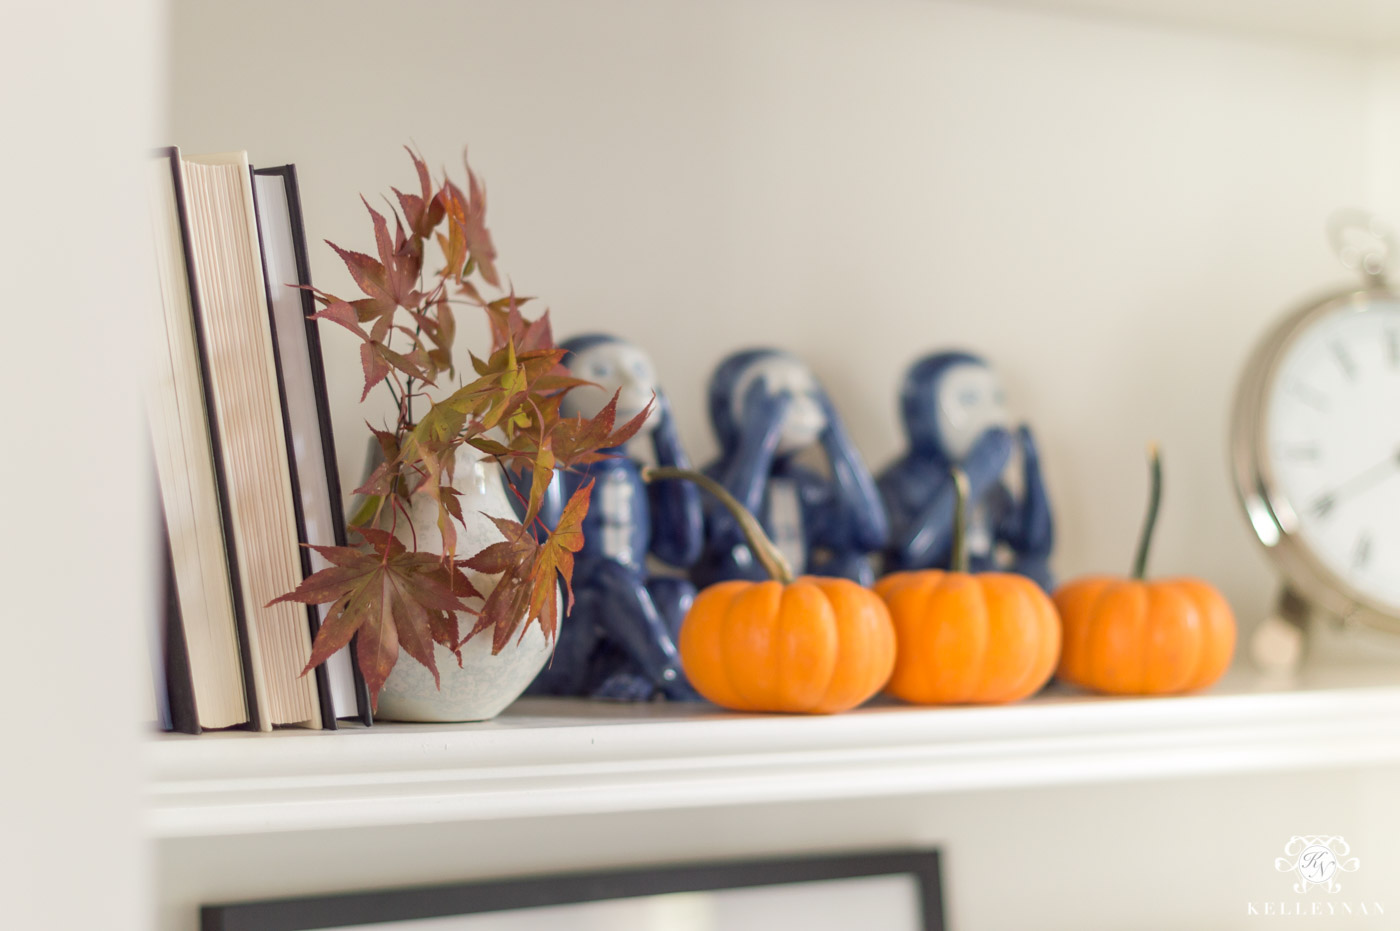 Fall shelf decor in the living room with orange pumpkins and maple leaves